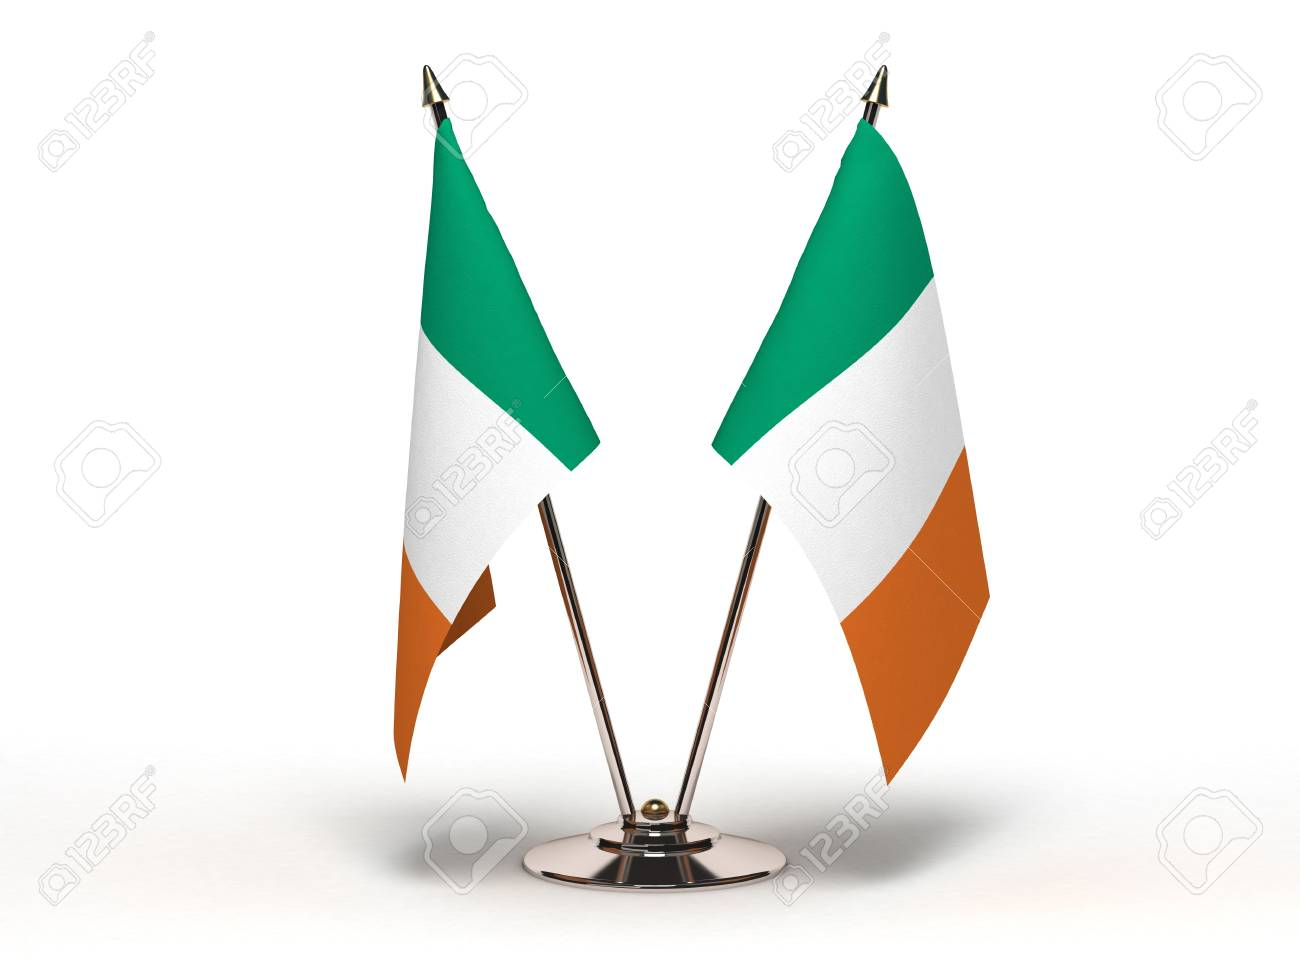 Miniature Flag of Ireland(Isolated with clipping path) - 12218235